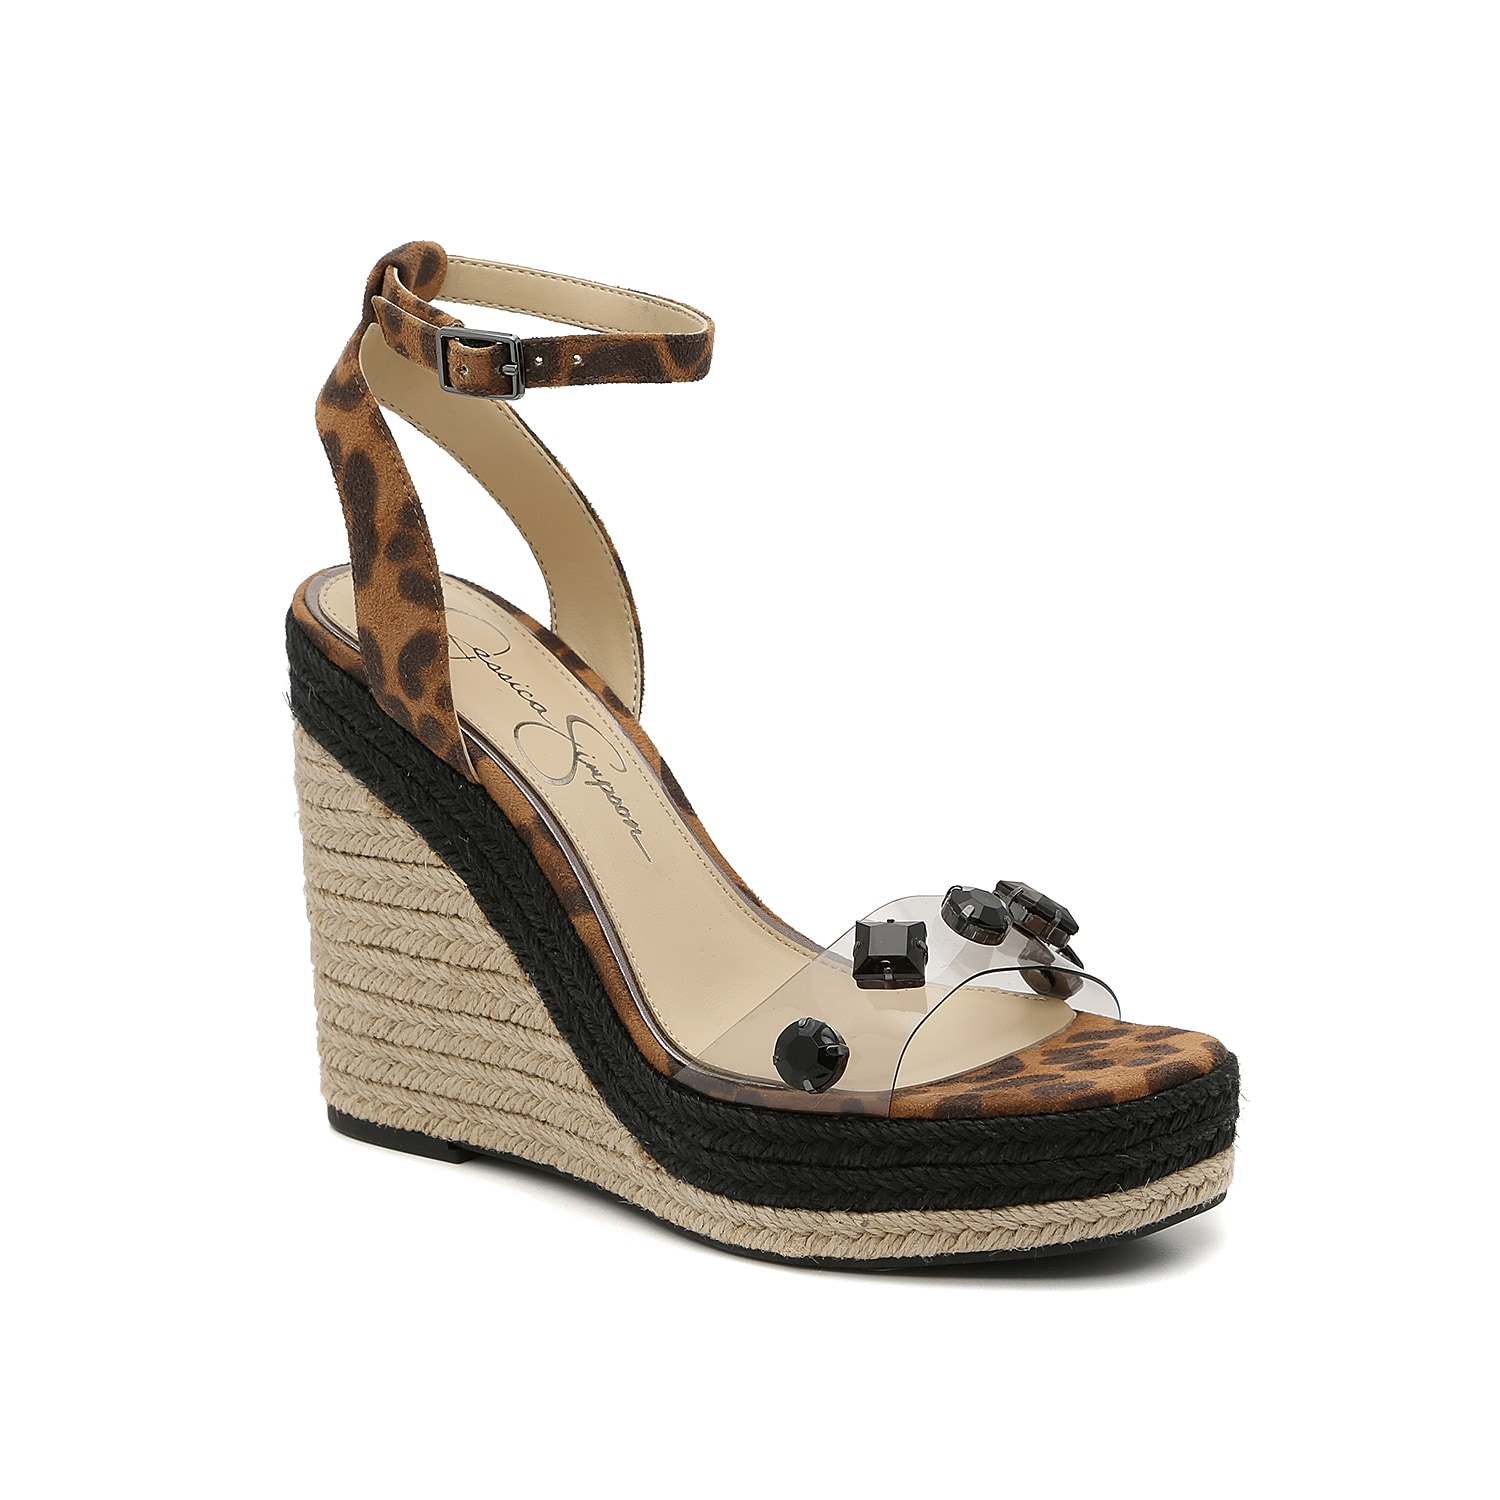 Jazz up warm weather looks with the Sameya wedge sandal from Jessica Simpson. Featuring a clear lucite toe strap with jeweled accents, this espadrille pair will have all eyes on you.